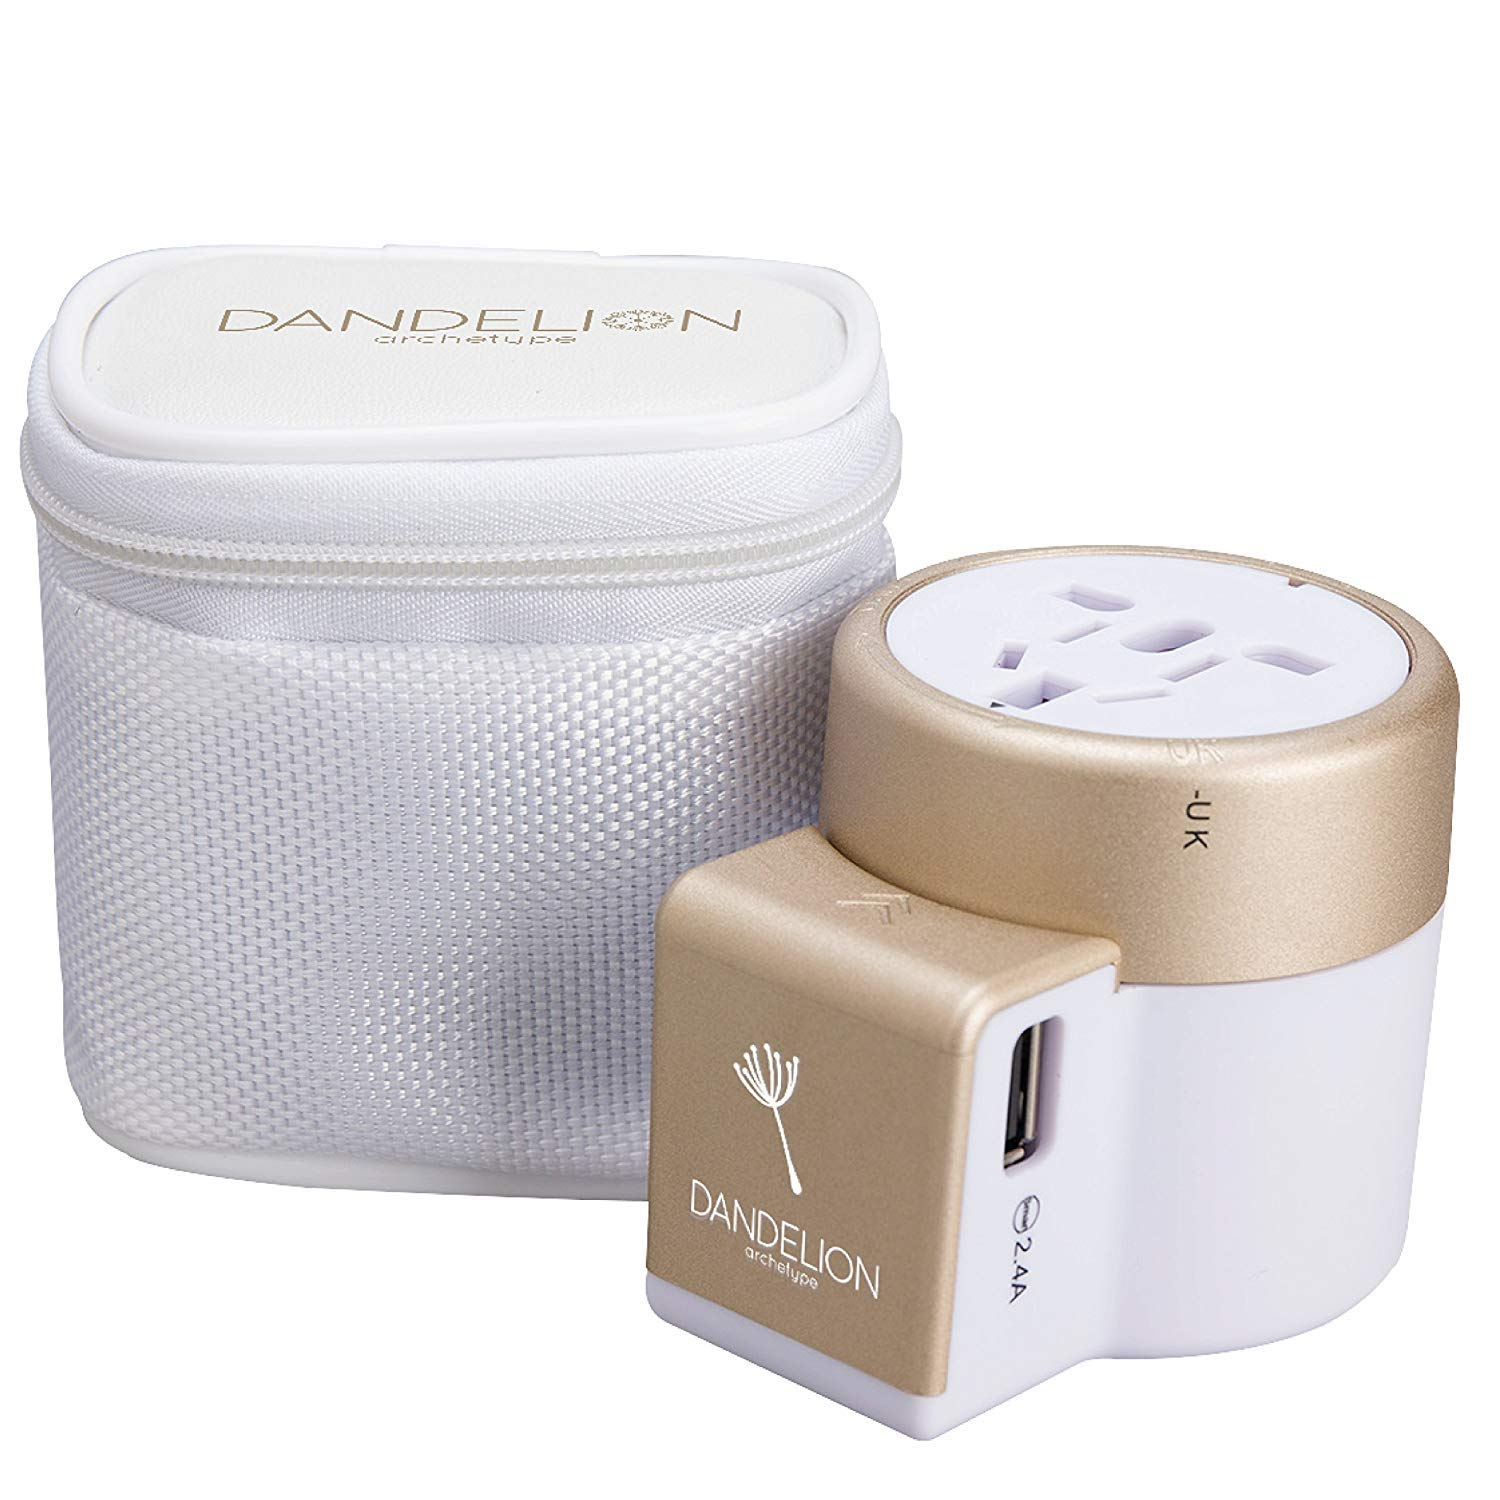 DANDELION Travel Adapter Outlet Adapter Traveler Accessory Universal Wall Charger 2 USB Ports  UK  USA  AU  Europe  Asia  International Power Plug Adaptor for Multiple Socket Type C  A  I  G  Gold